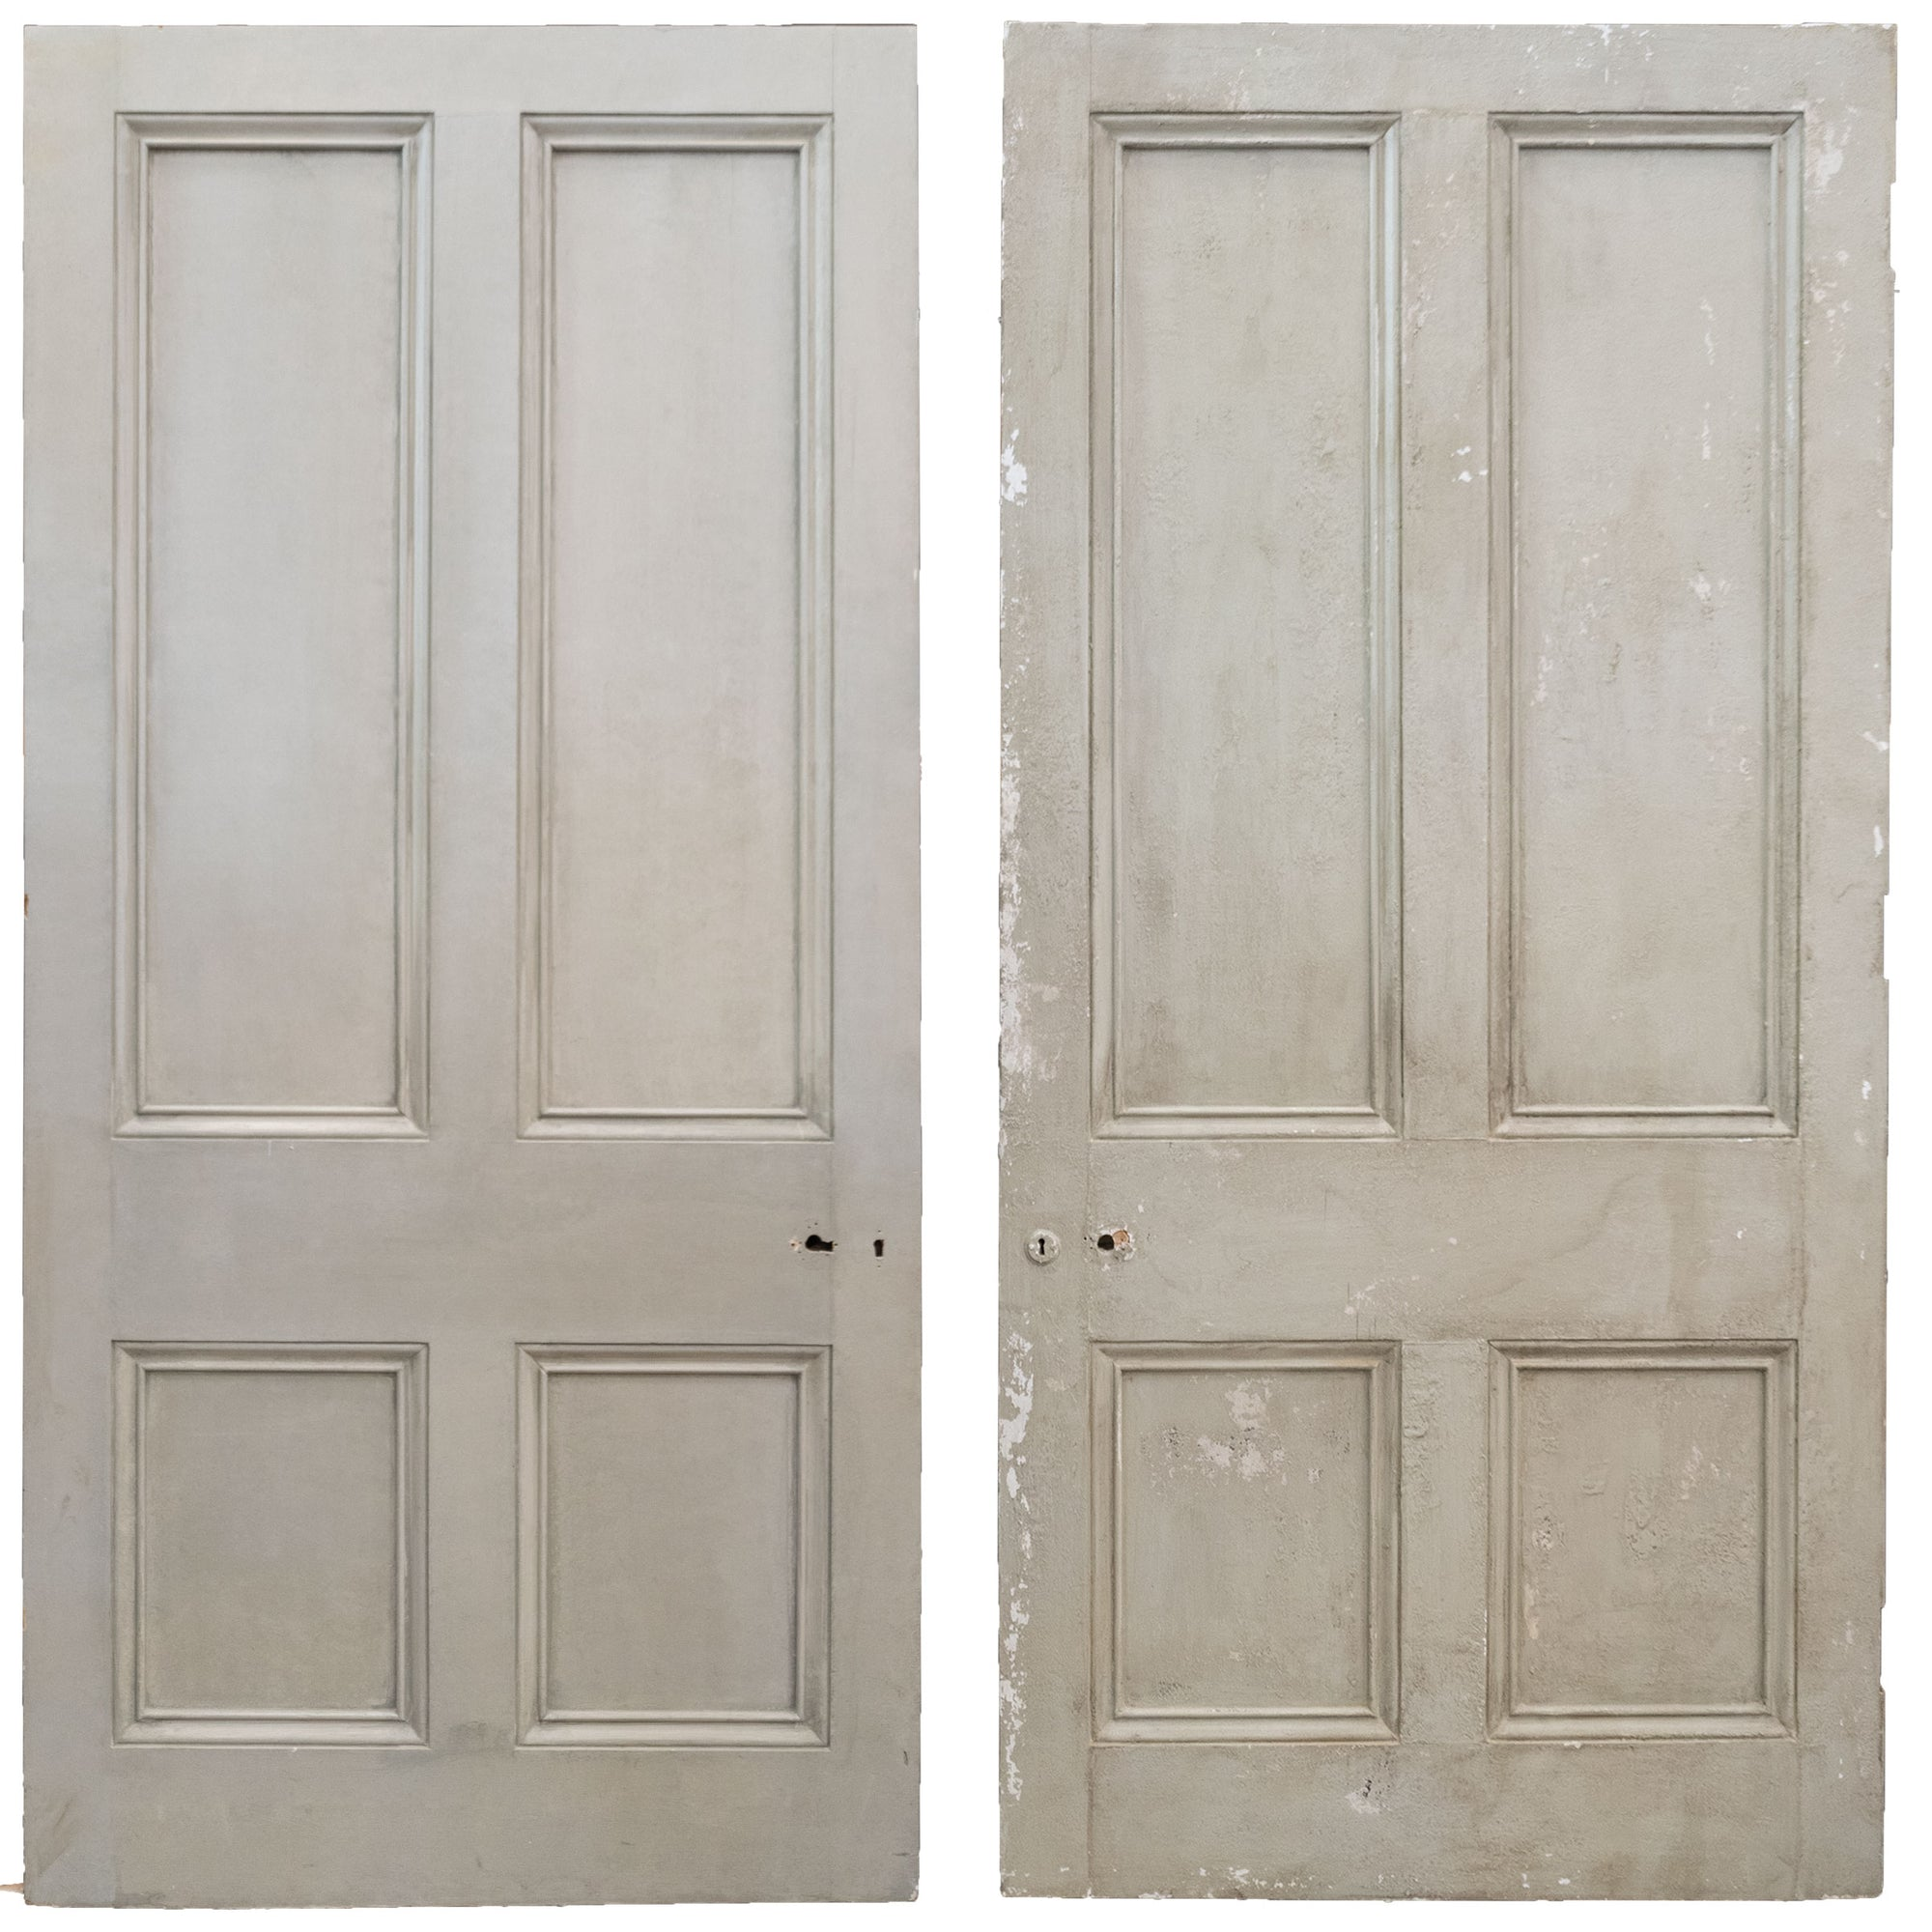 Large Antique Victorian 4 Panel Door - 223.5cm x 105.5cm